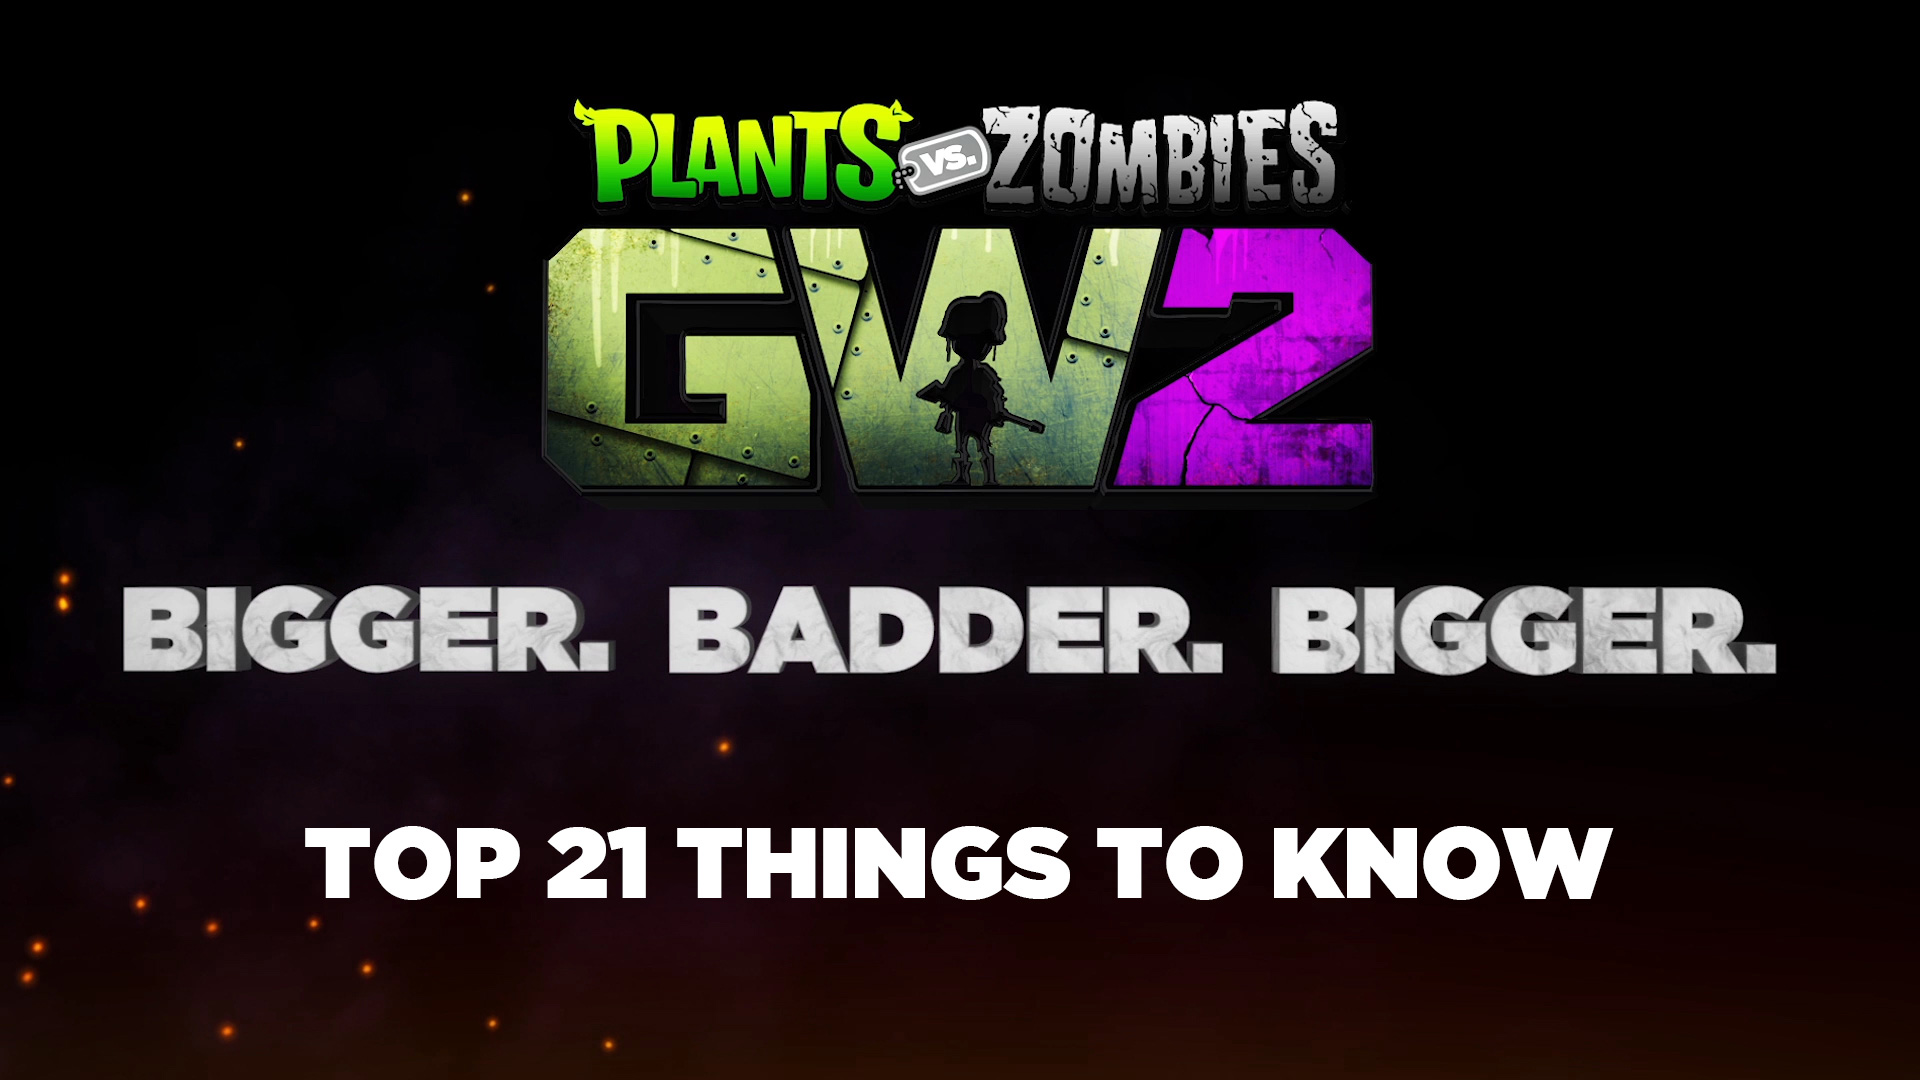 Plants vs zombies garden warfare 2 top 21 things to know Plants vs zombies garden warfare 2 event calendar